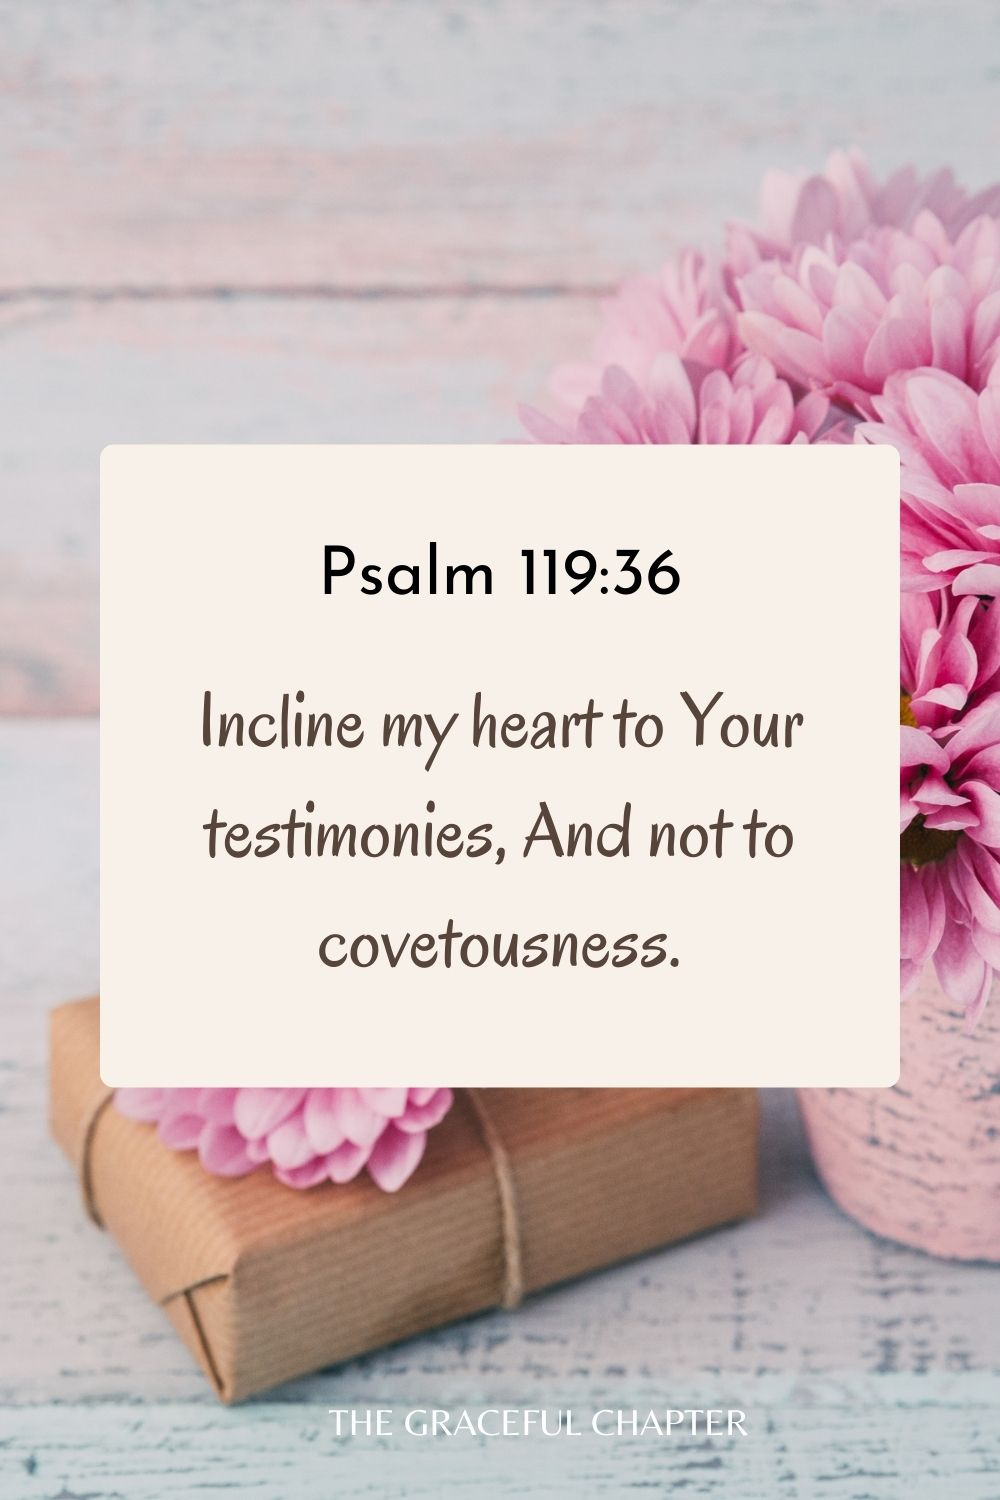 Incline my heart to Your testimonies, And not to covetousness. Psalm 119:36